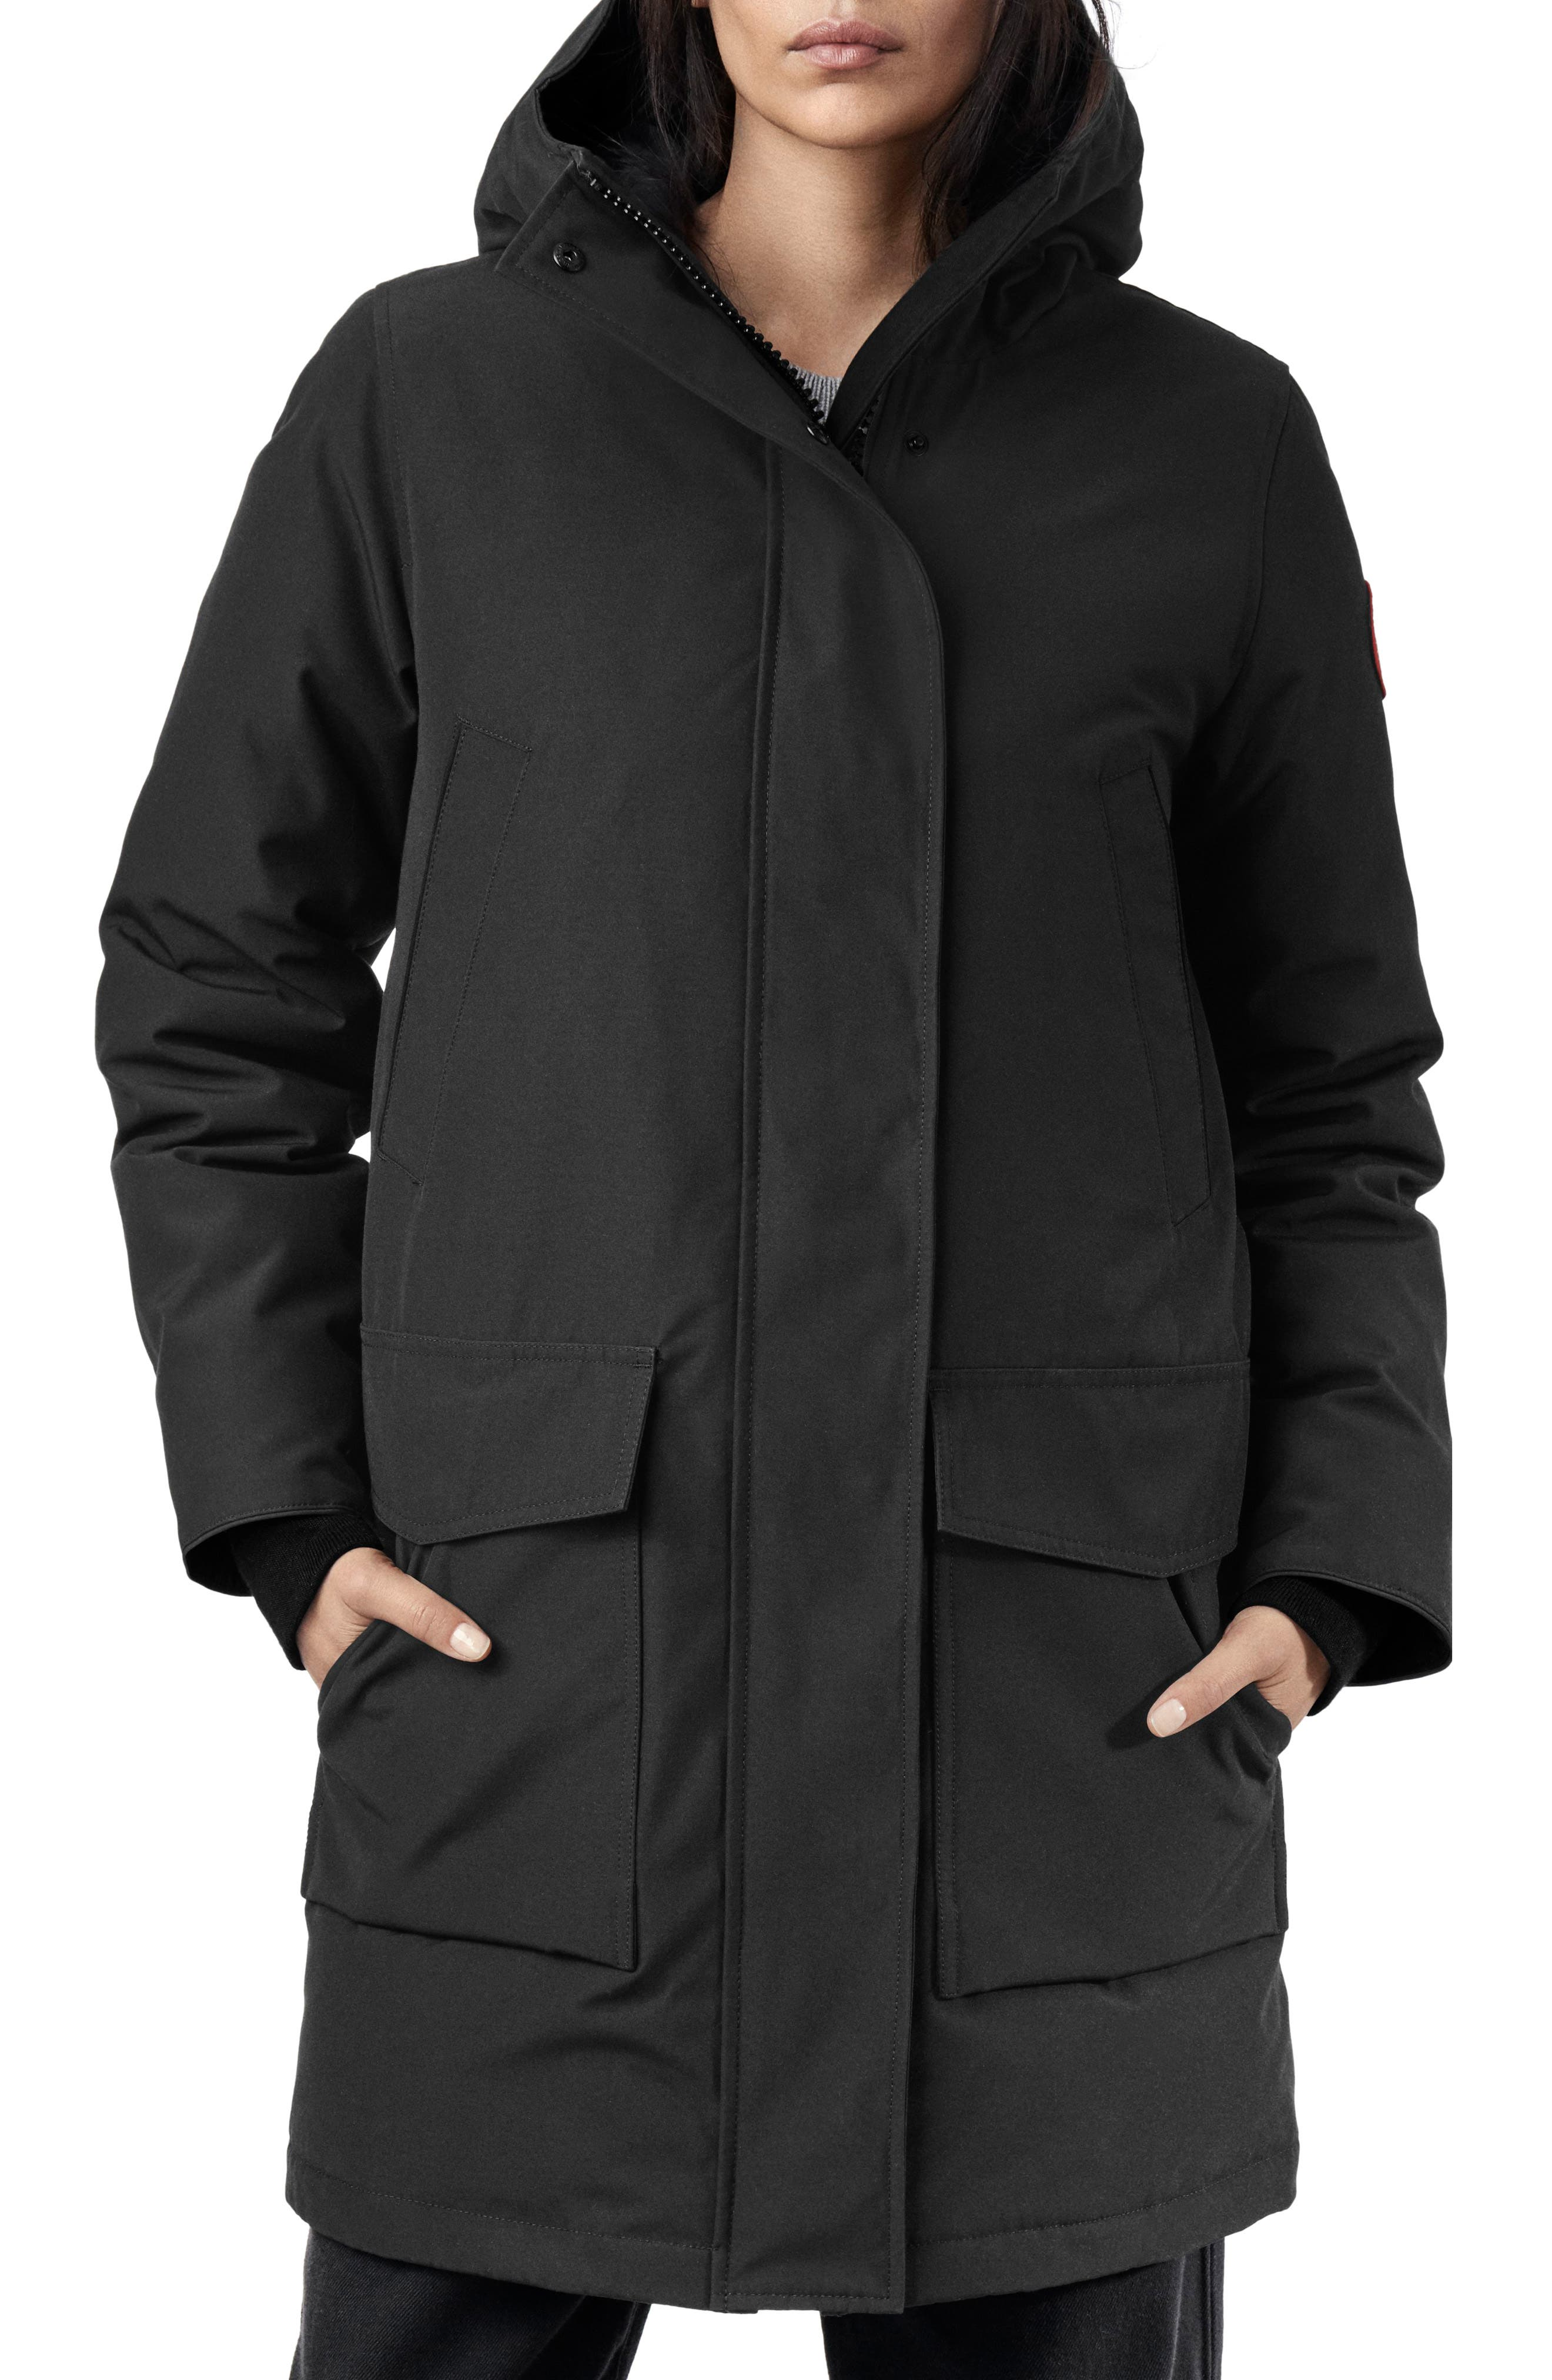 Canada Goose Canmore 625 Fill Power Down Parka, (0) - Black